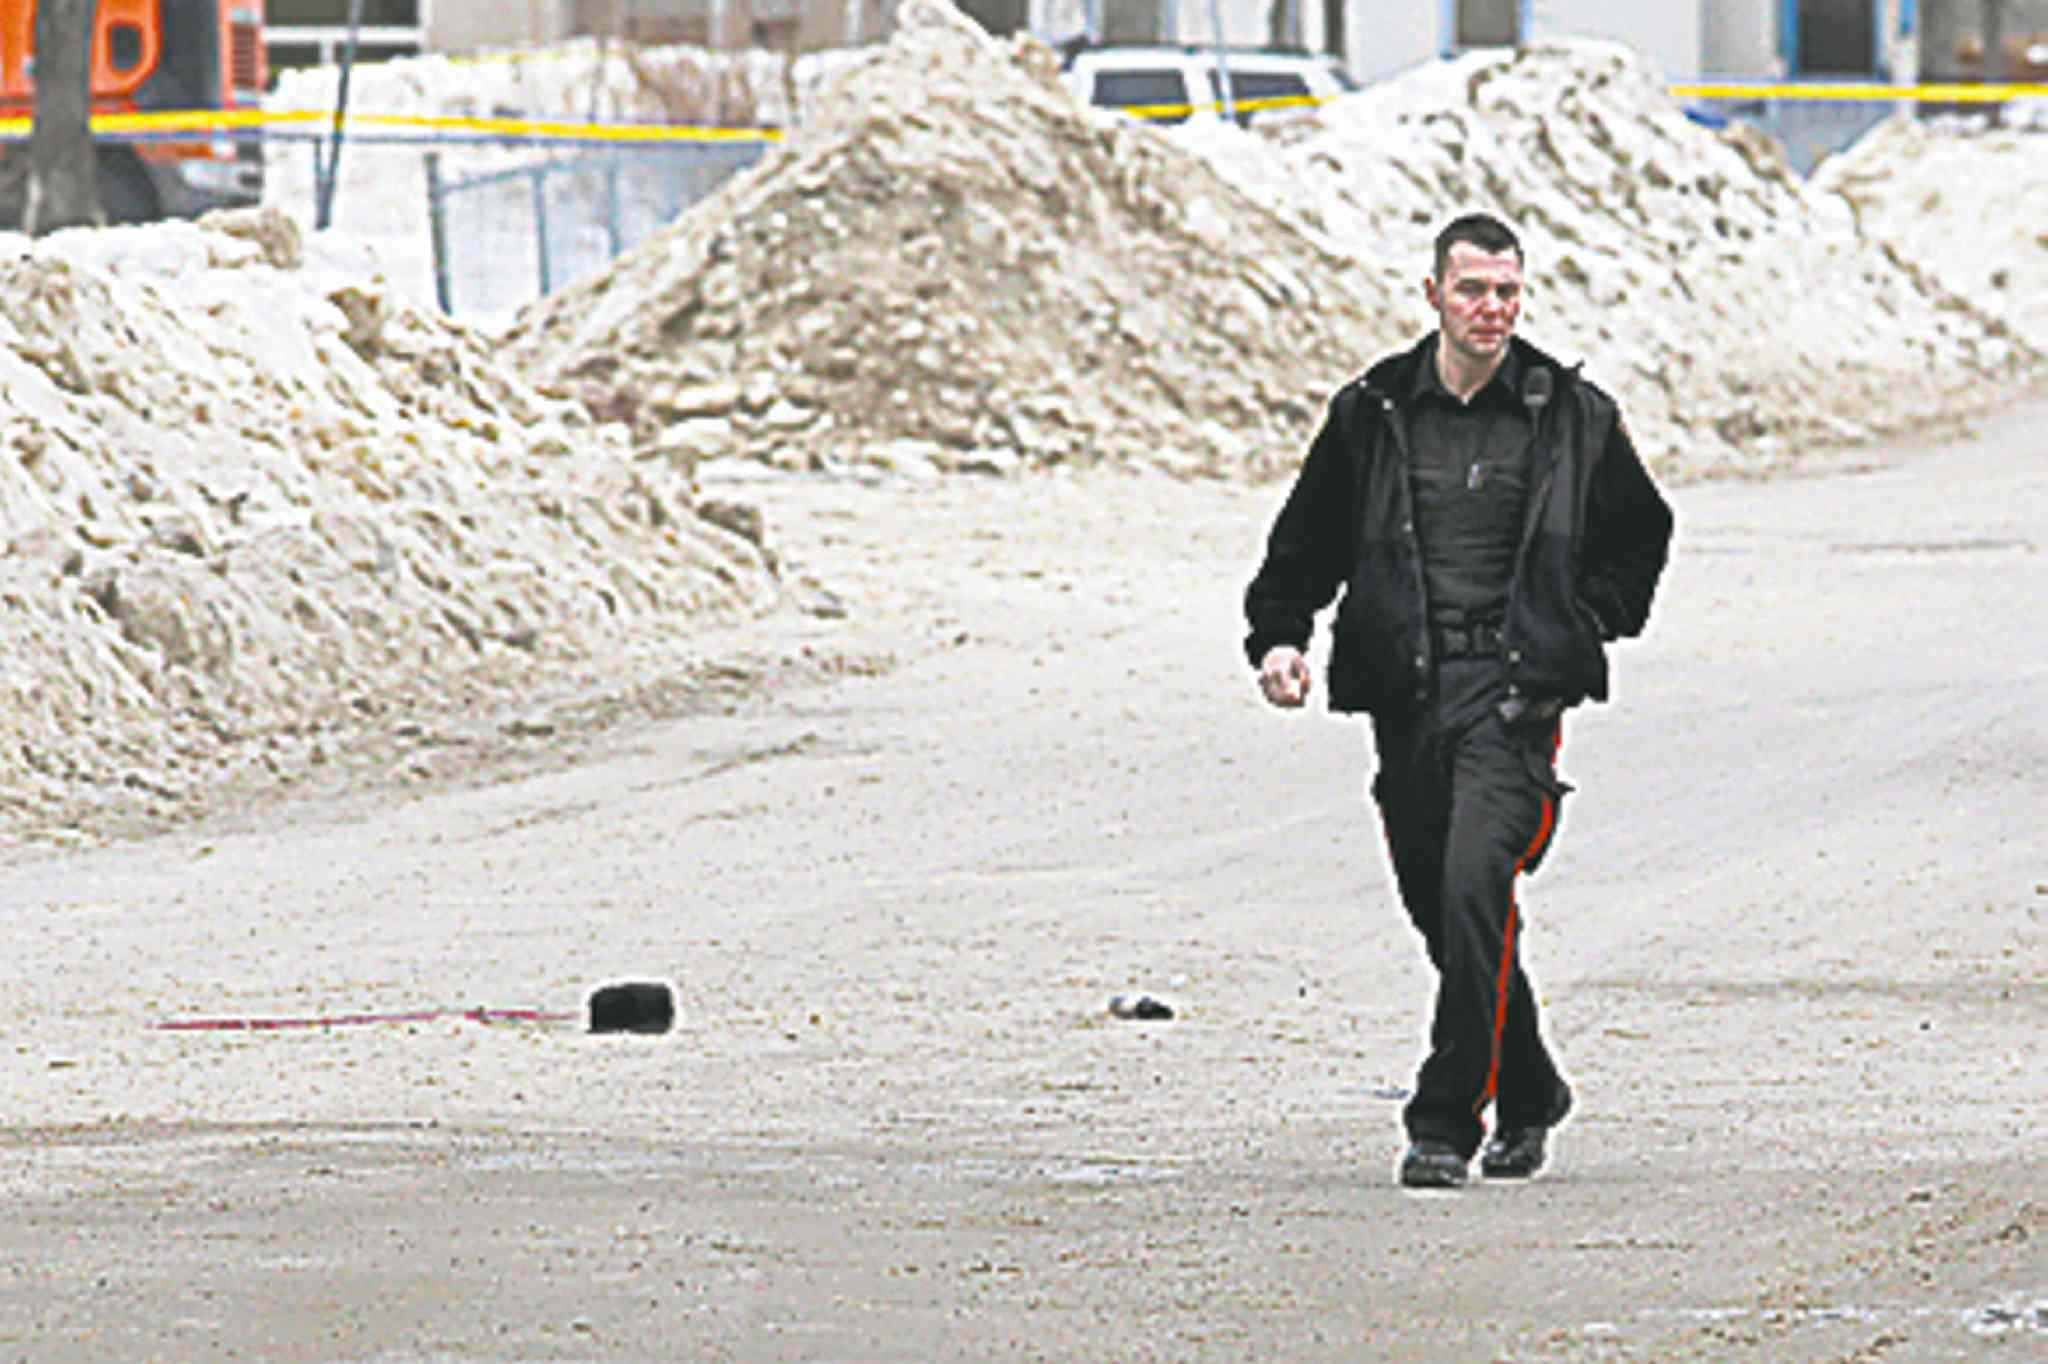 A police officer examines the scene of the shooting.